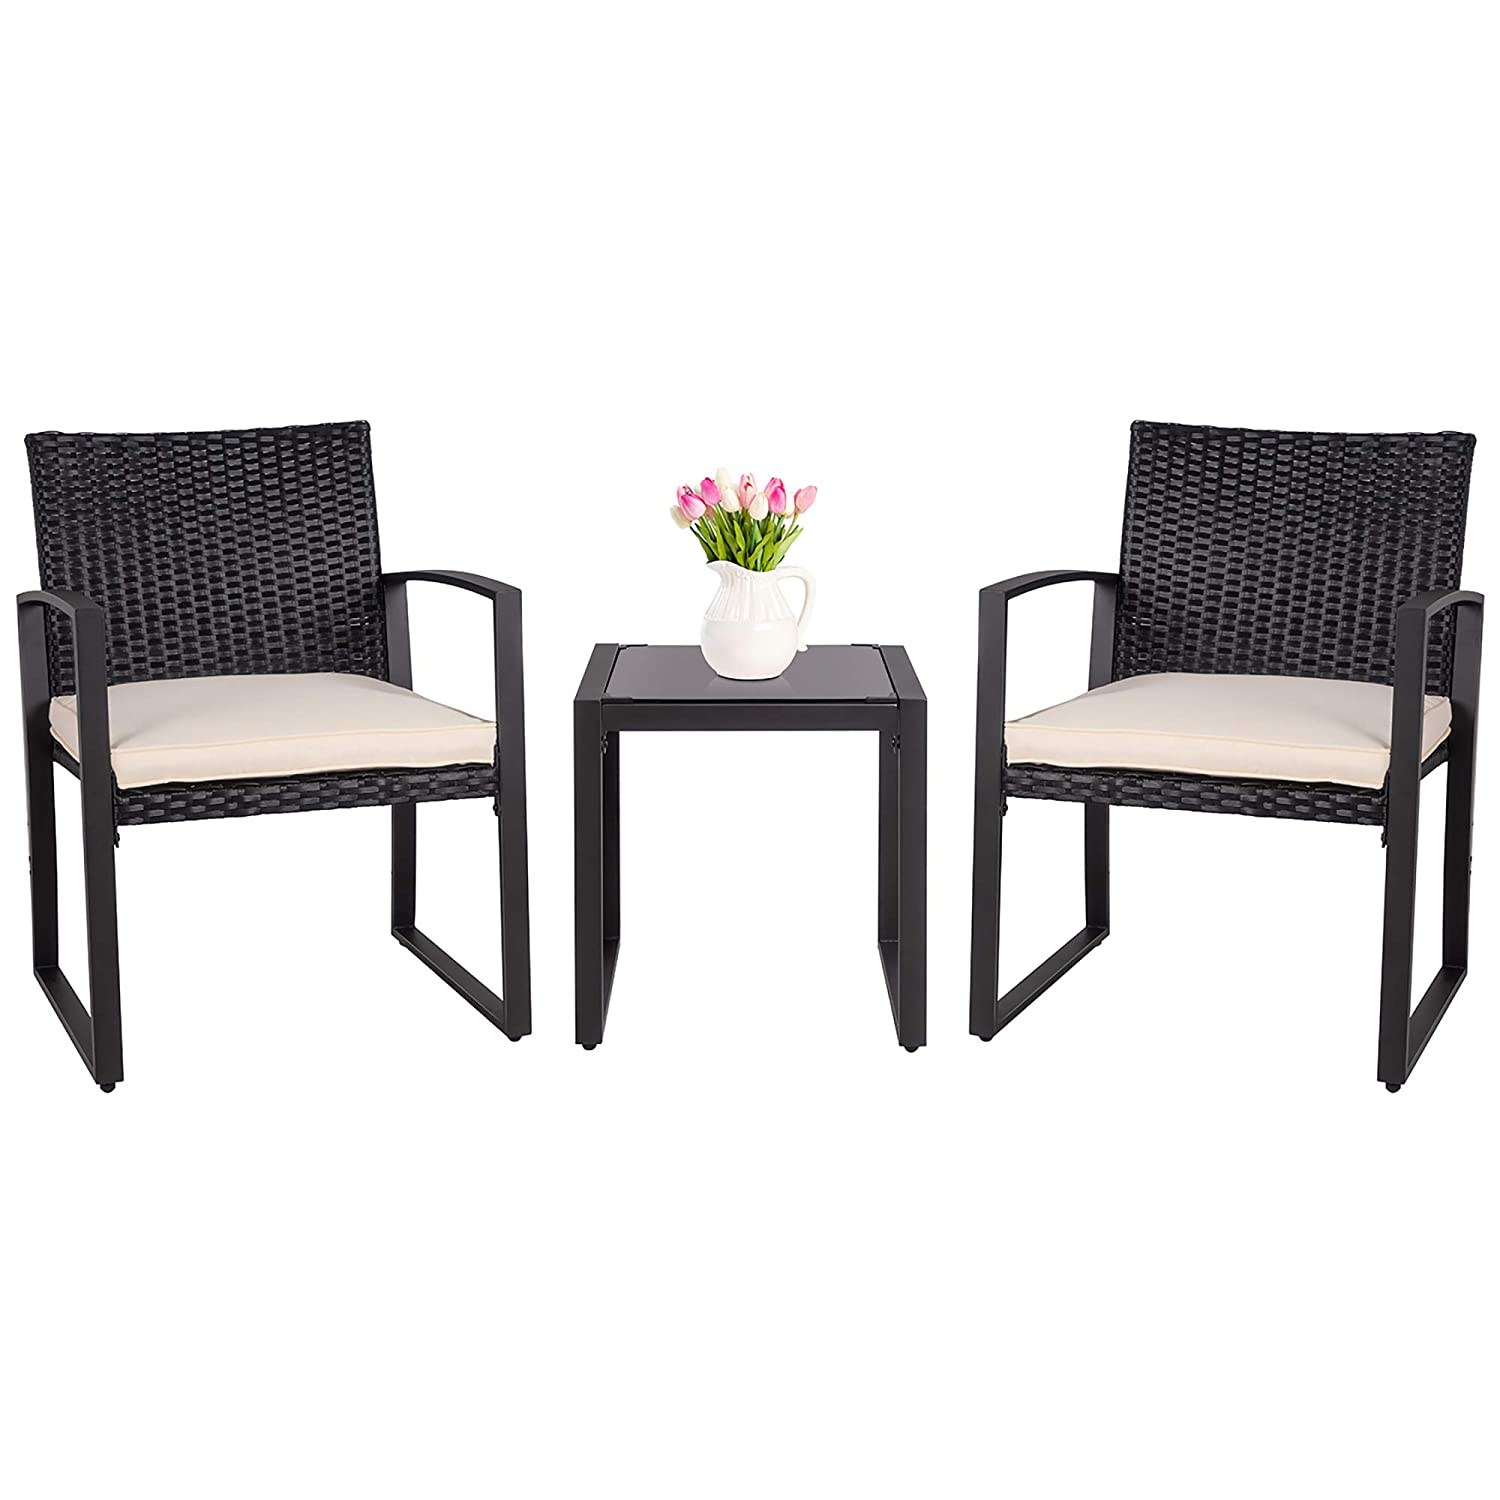 SUNLEI 3 Pieces Patio Set Outdoor Wicker Patio Furniture Sets Modern Bistro Set Molded Rattan Chair Conversation Sets with Coffee Table Black